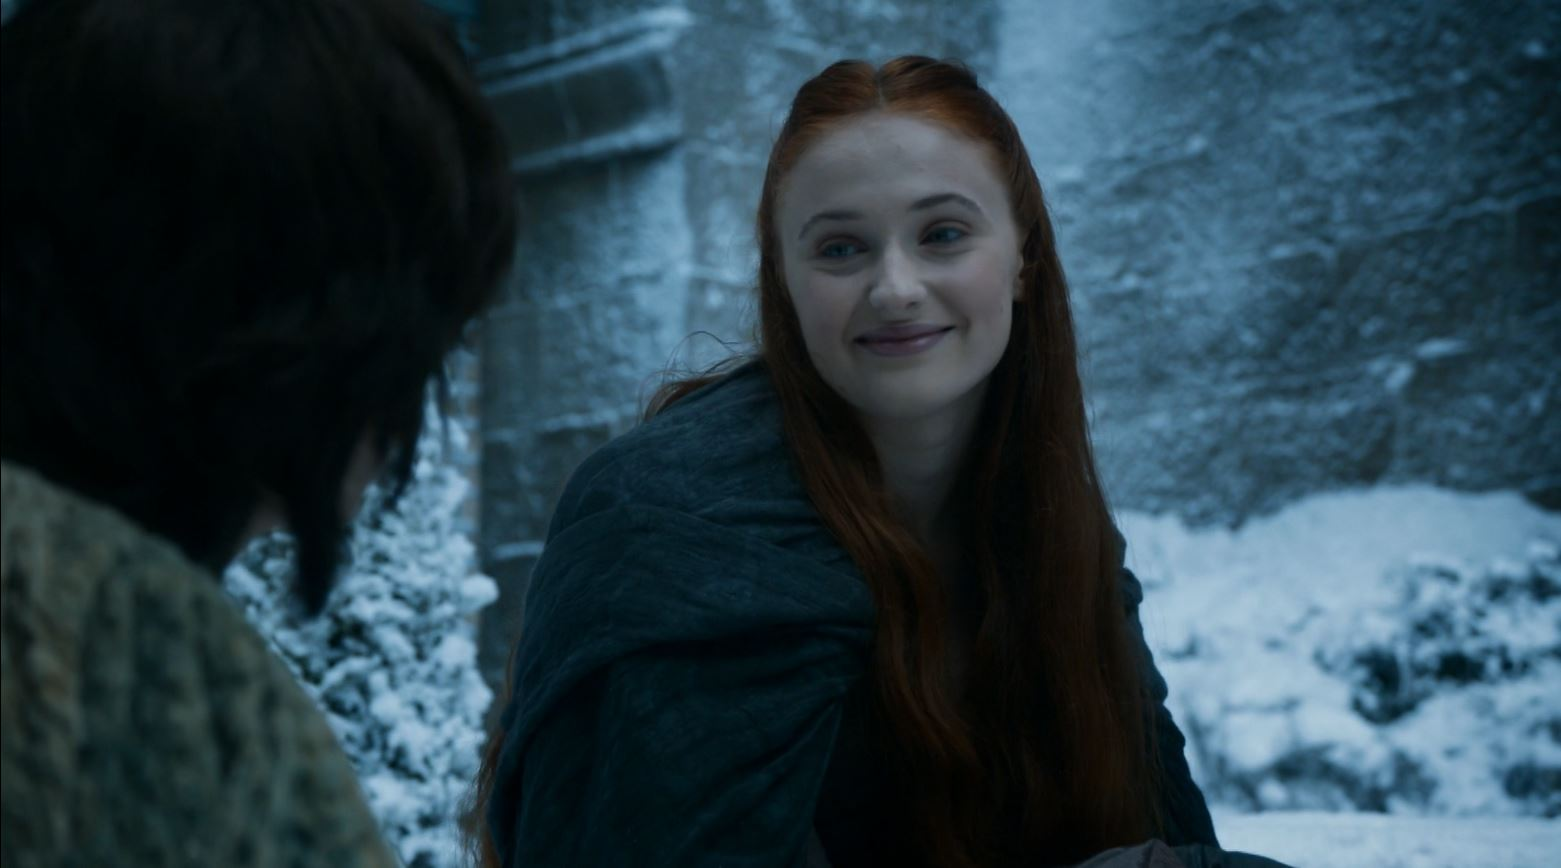 Game Of Thrones S4Ep7 Mockingbird Review - Sophie Turner as Sansa Stark in The Vale